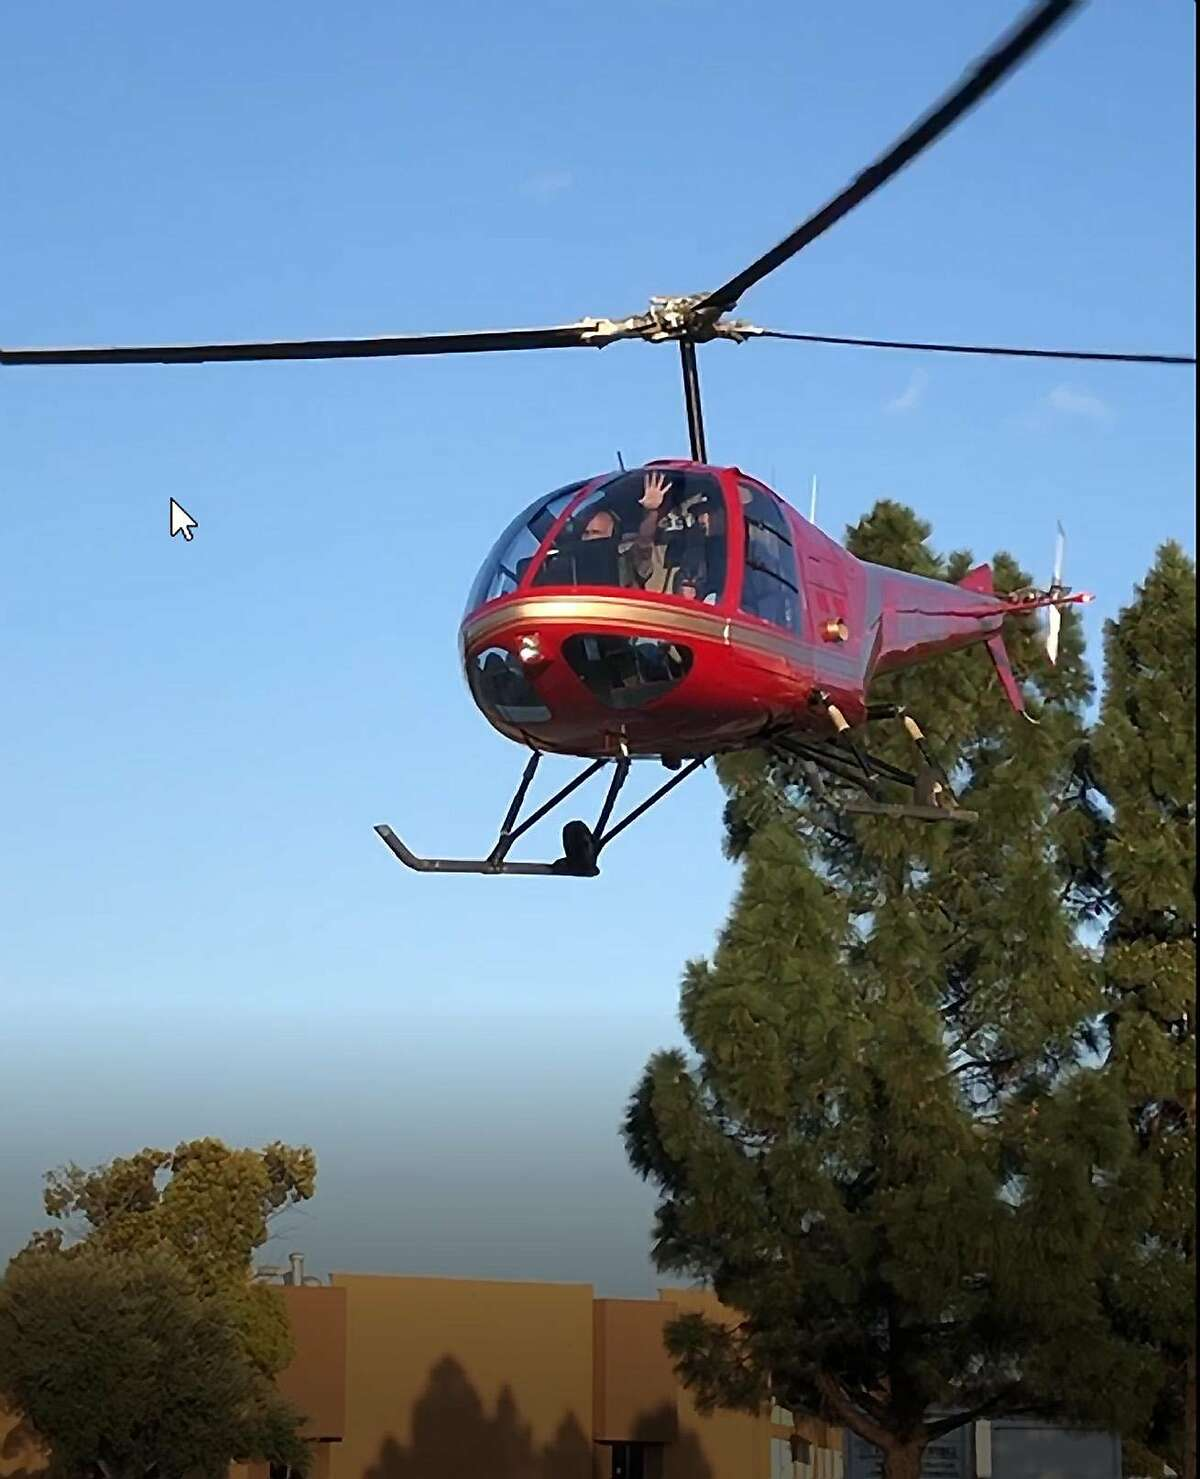 This private helicopter made an emergency landing in a Kmart parking lot in Redwood City because of a minor mechanical problem, police said. Saturday March 23, 2019.